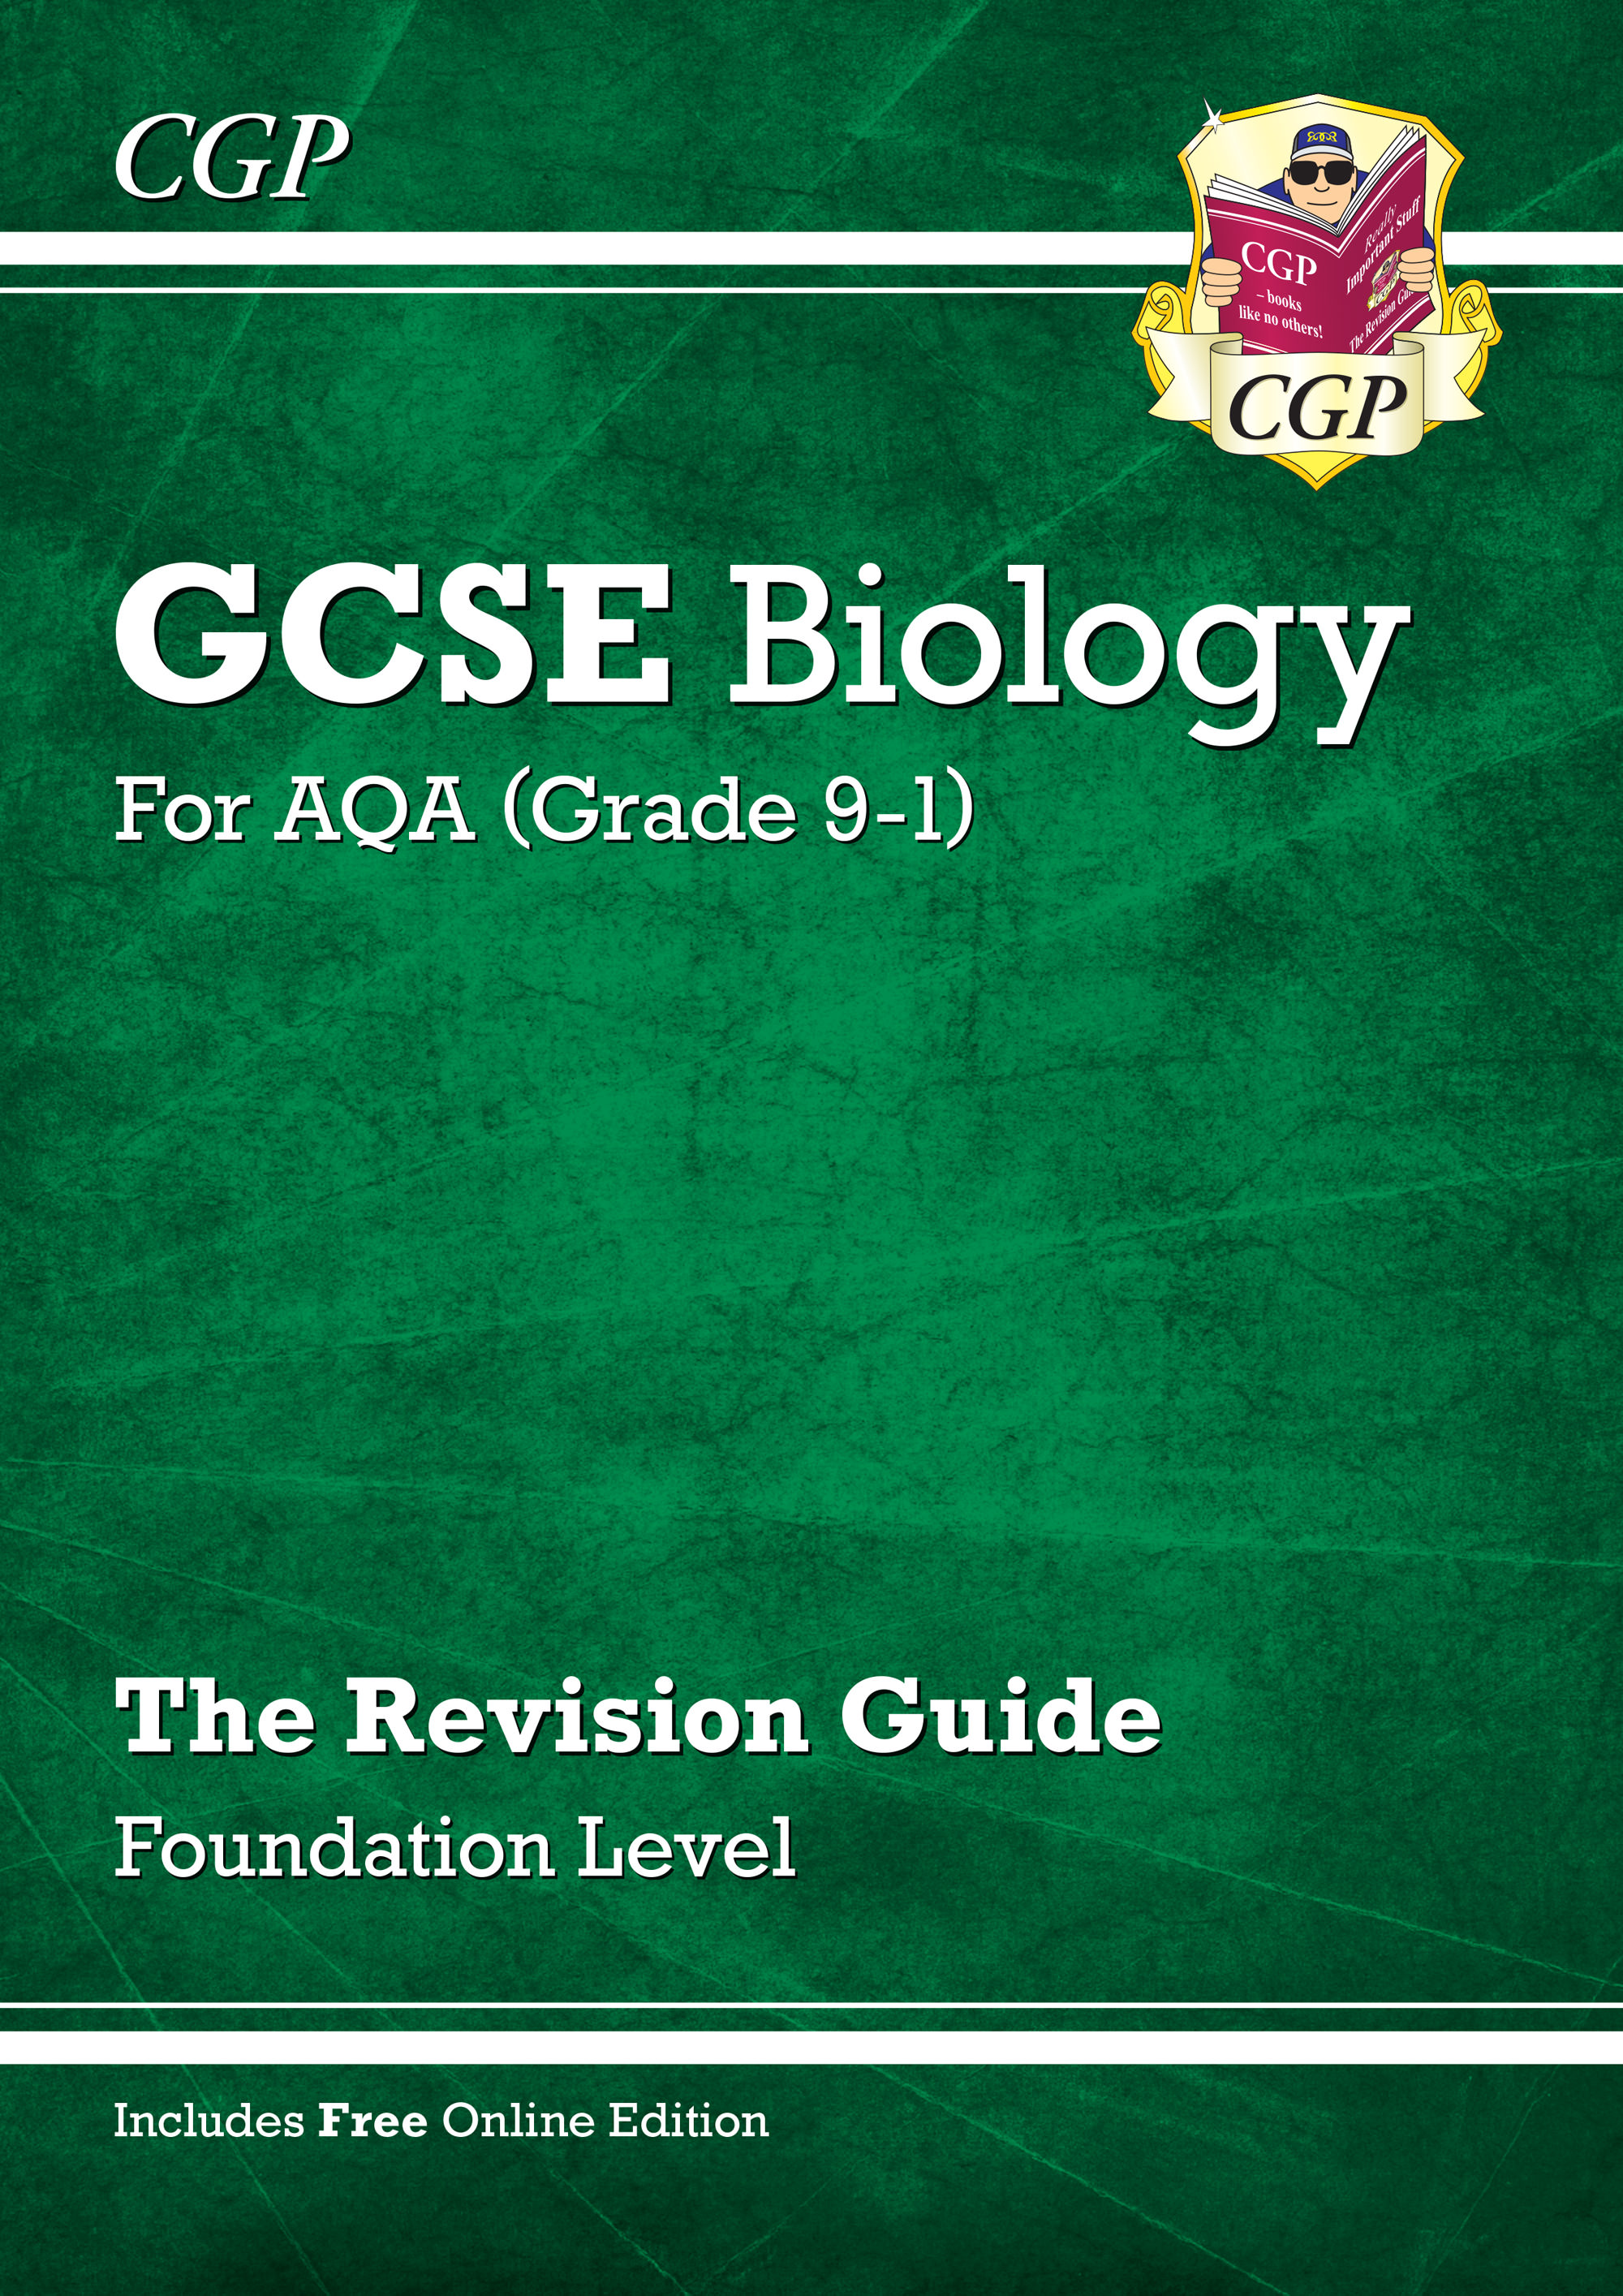 BAFR41 - New Grade 9-1 GCSE Biology: AQA Revision Guide with Online Edition - Foundation